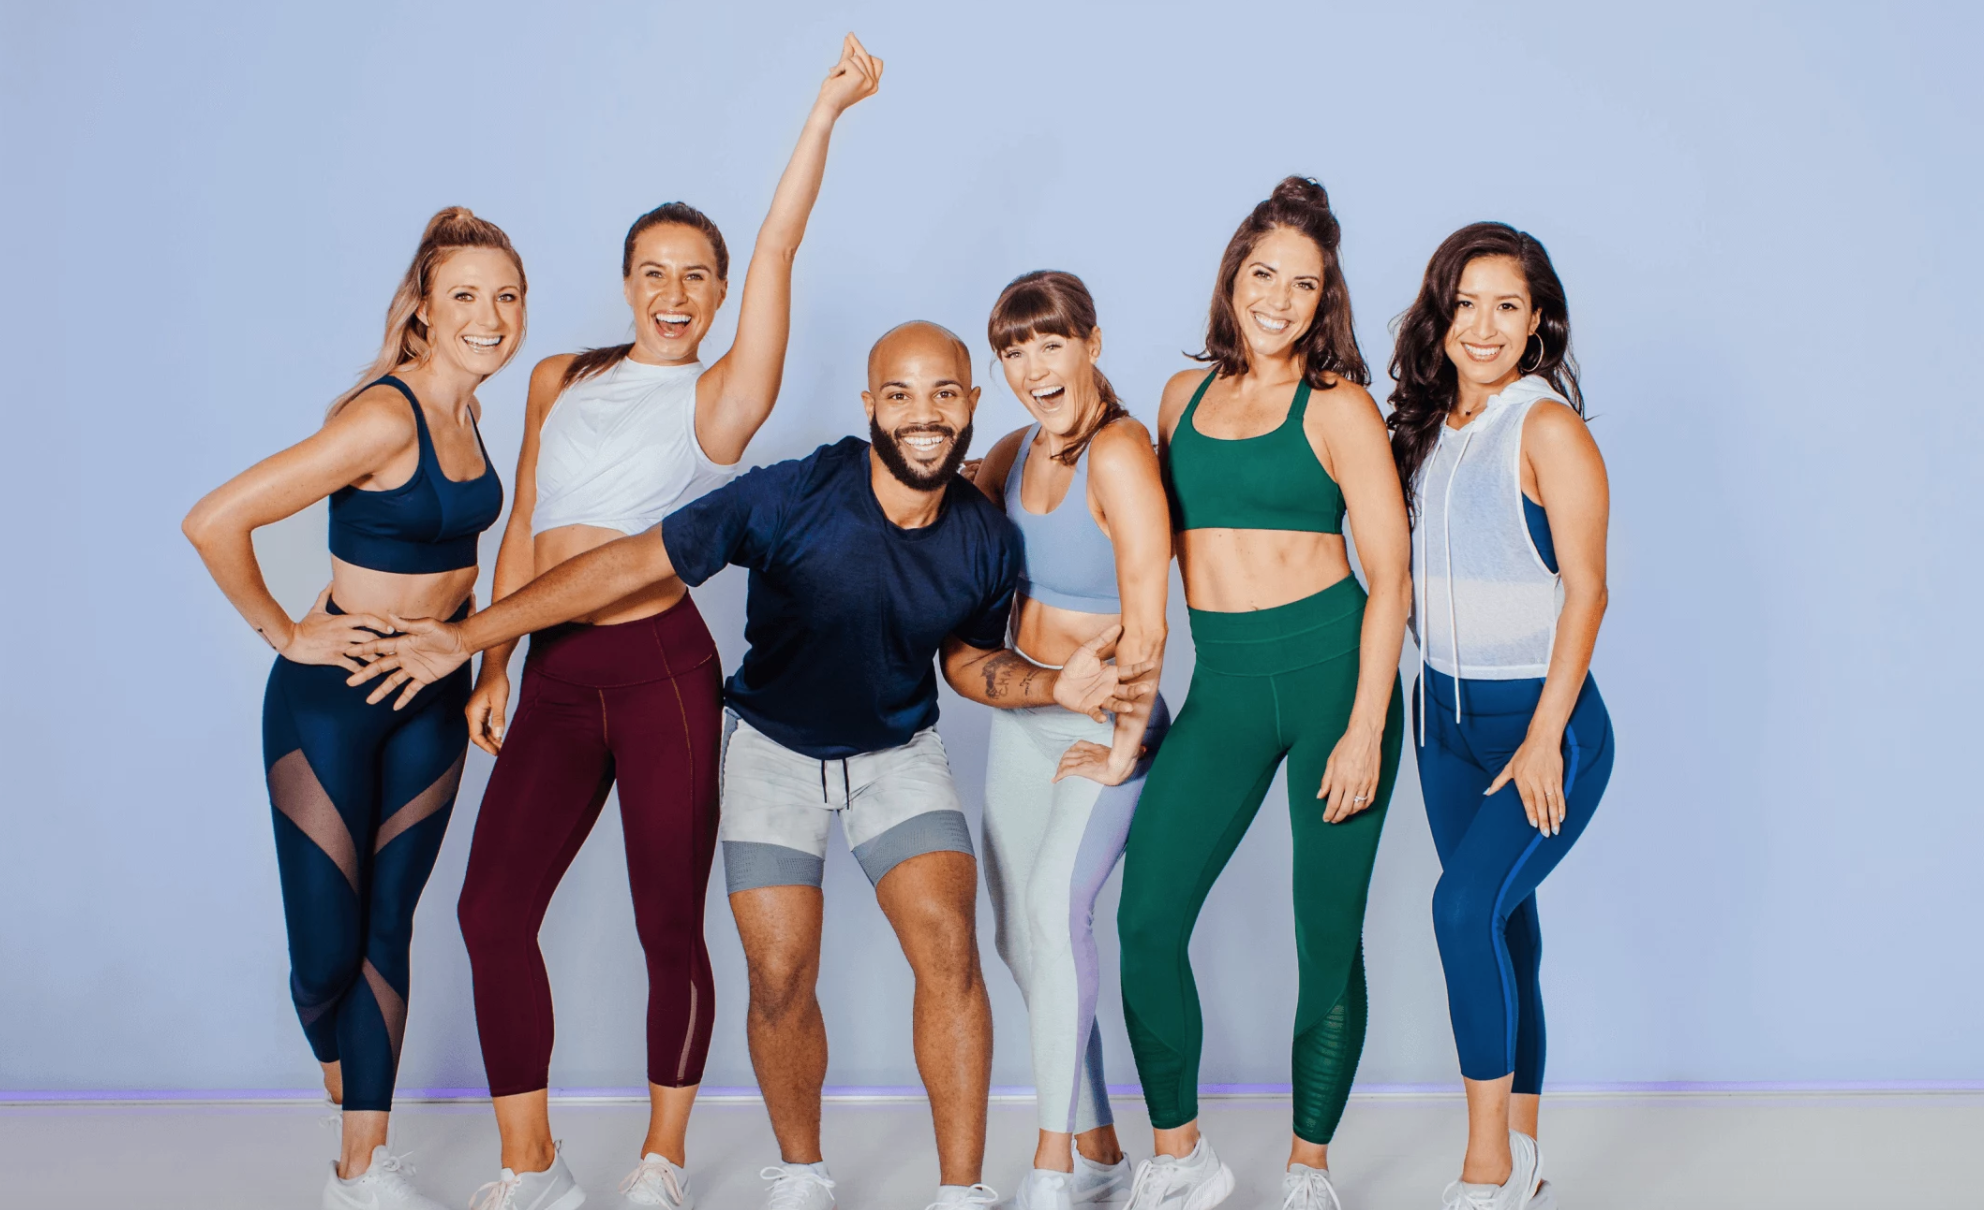 Fitness instructors pose in an advertisement for Obé.